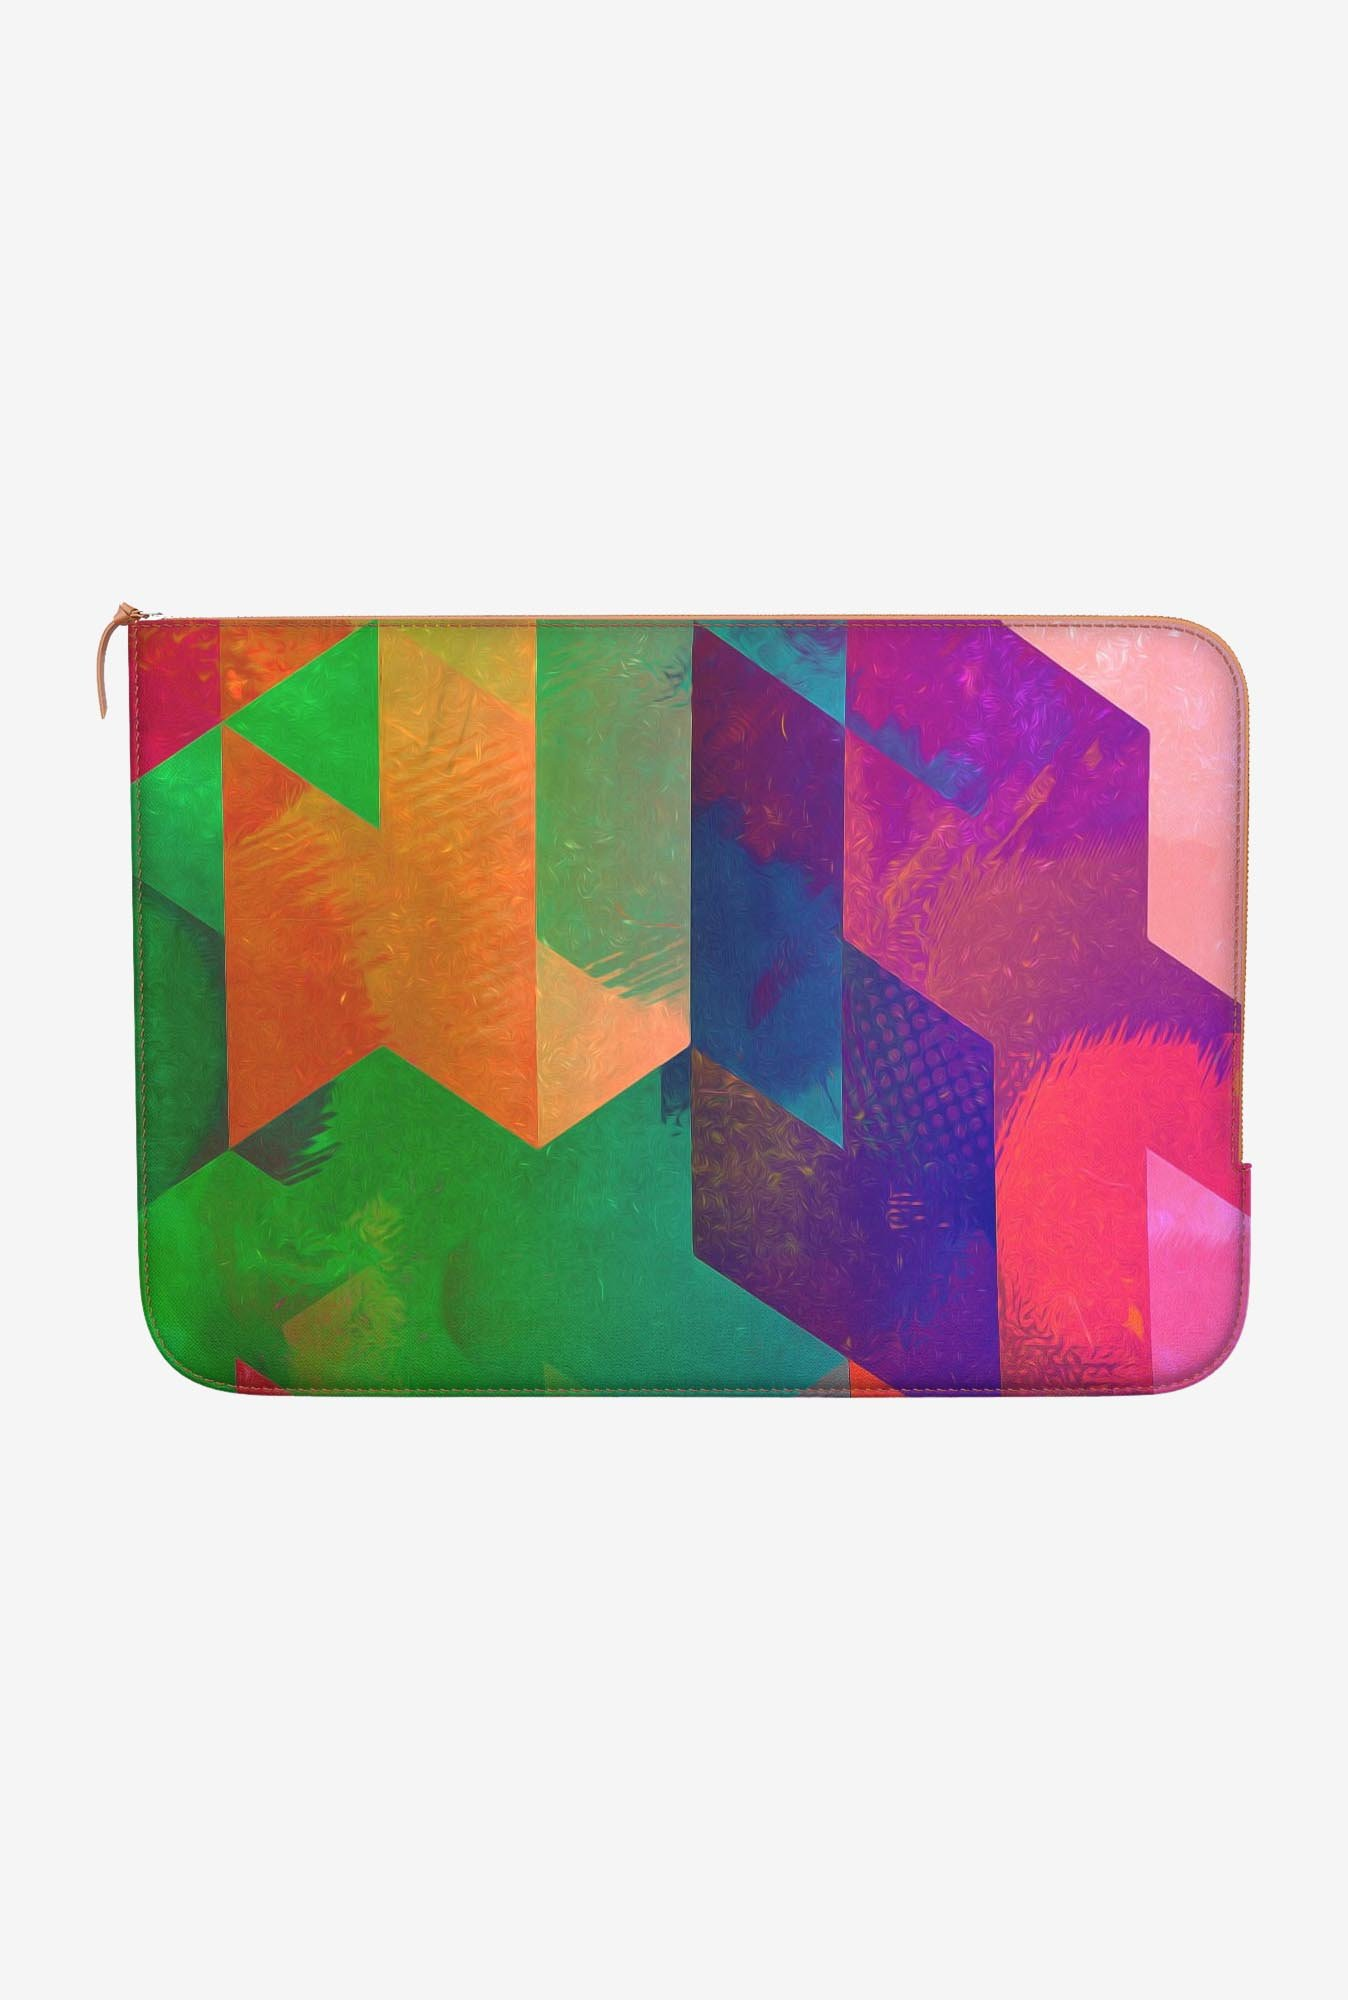 DailyObjects ytwwns tryb MacBook Air 11 Zippered Sleeve